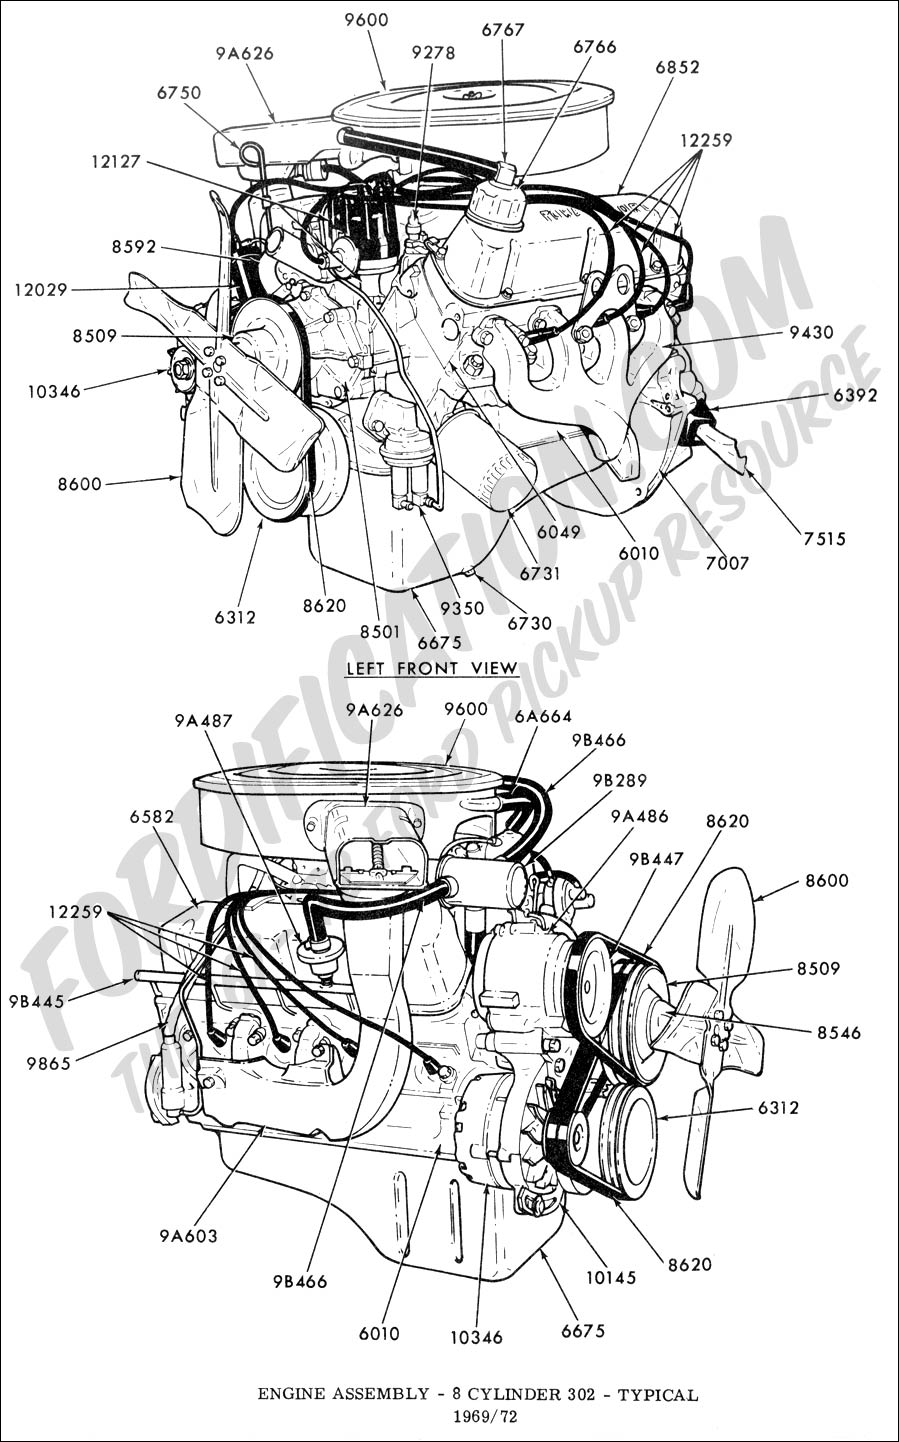 1996 F 700 Wiring Diagram Library 1998 Ford F700 Diagrams Truck Technical Drawings And Schematics Section E 1992